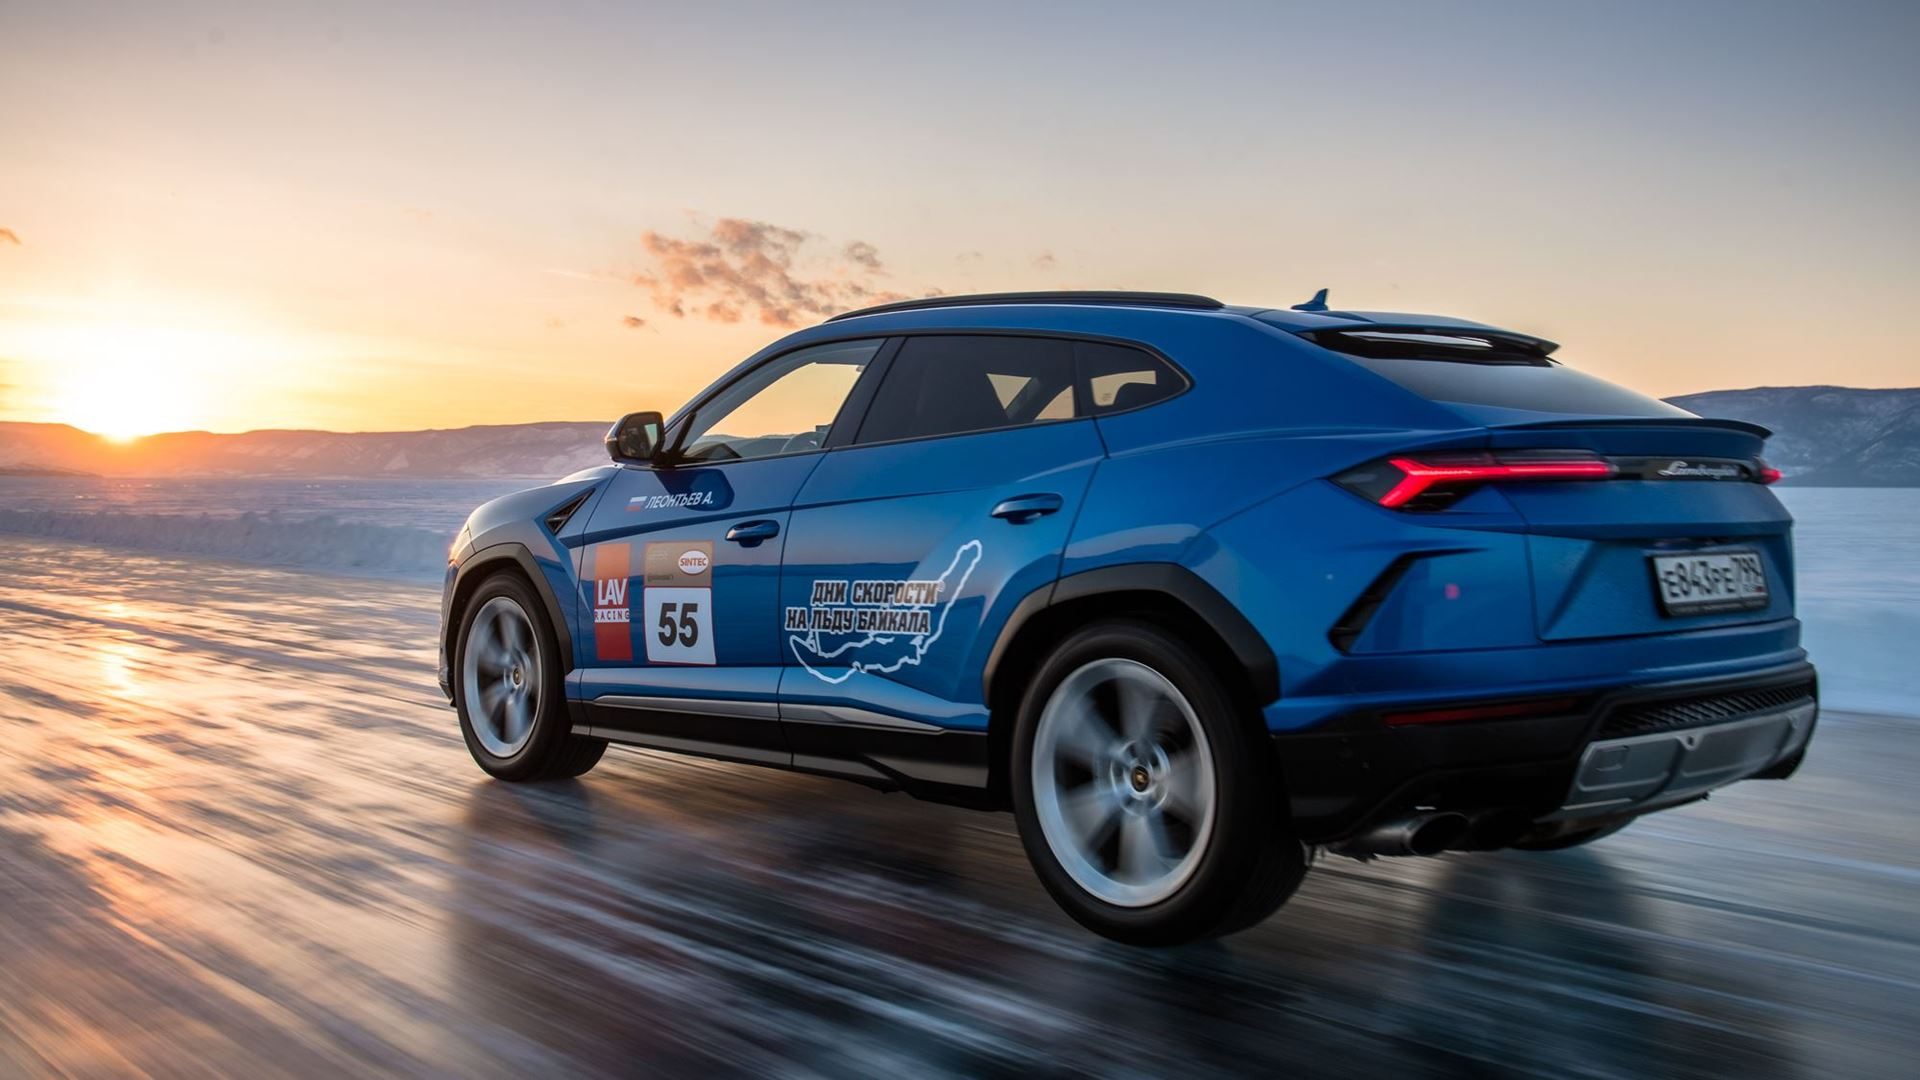 Lamborghini Urus sets high-speed record on the ice of Lake Baikal - Image 6